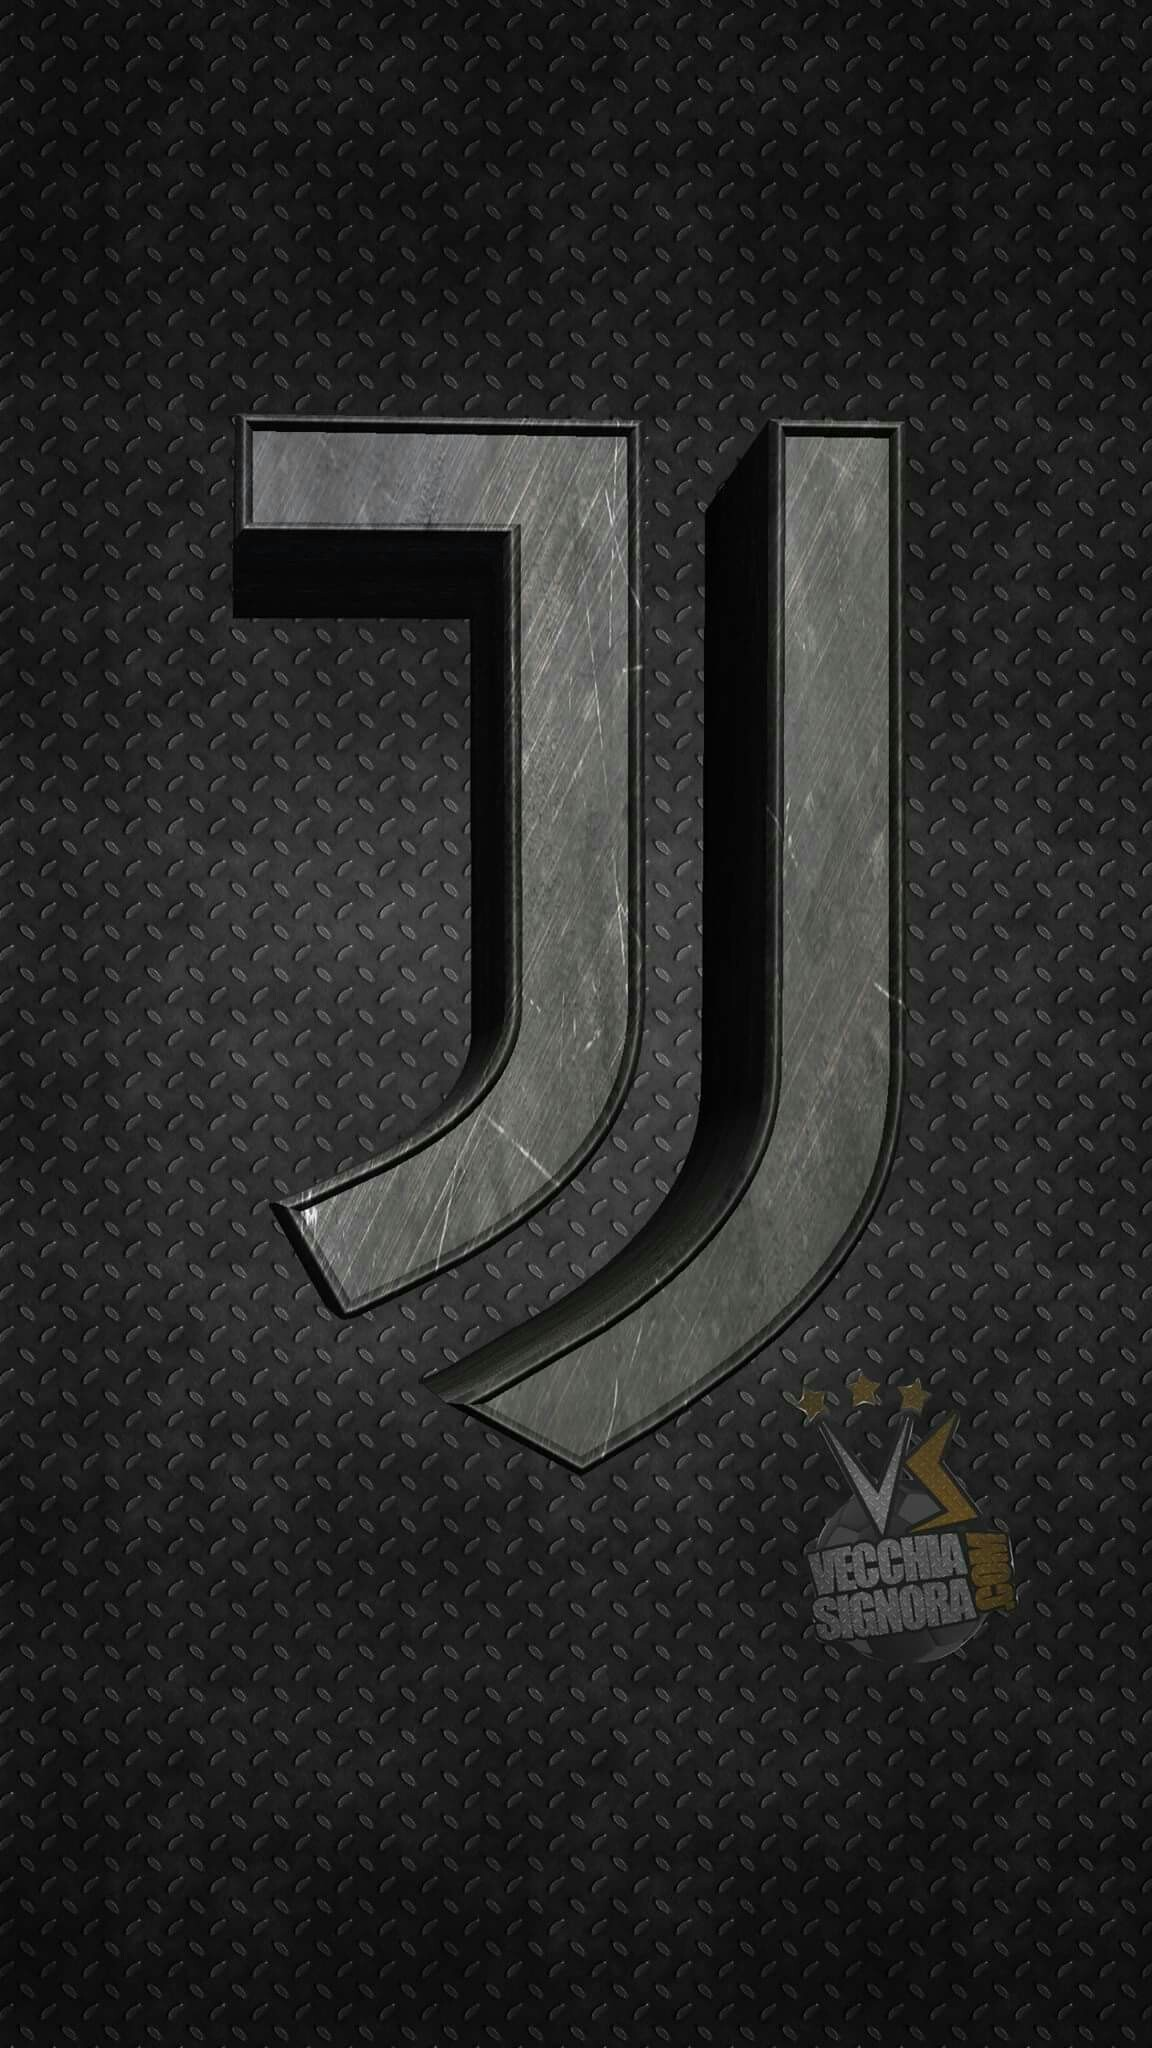 1152x2048 Mobile Phone Wallpaper Inspired By Juventus FC Rd Kit A